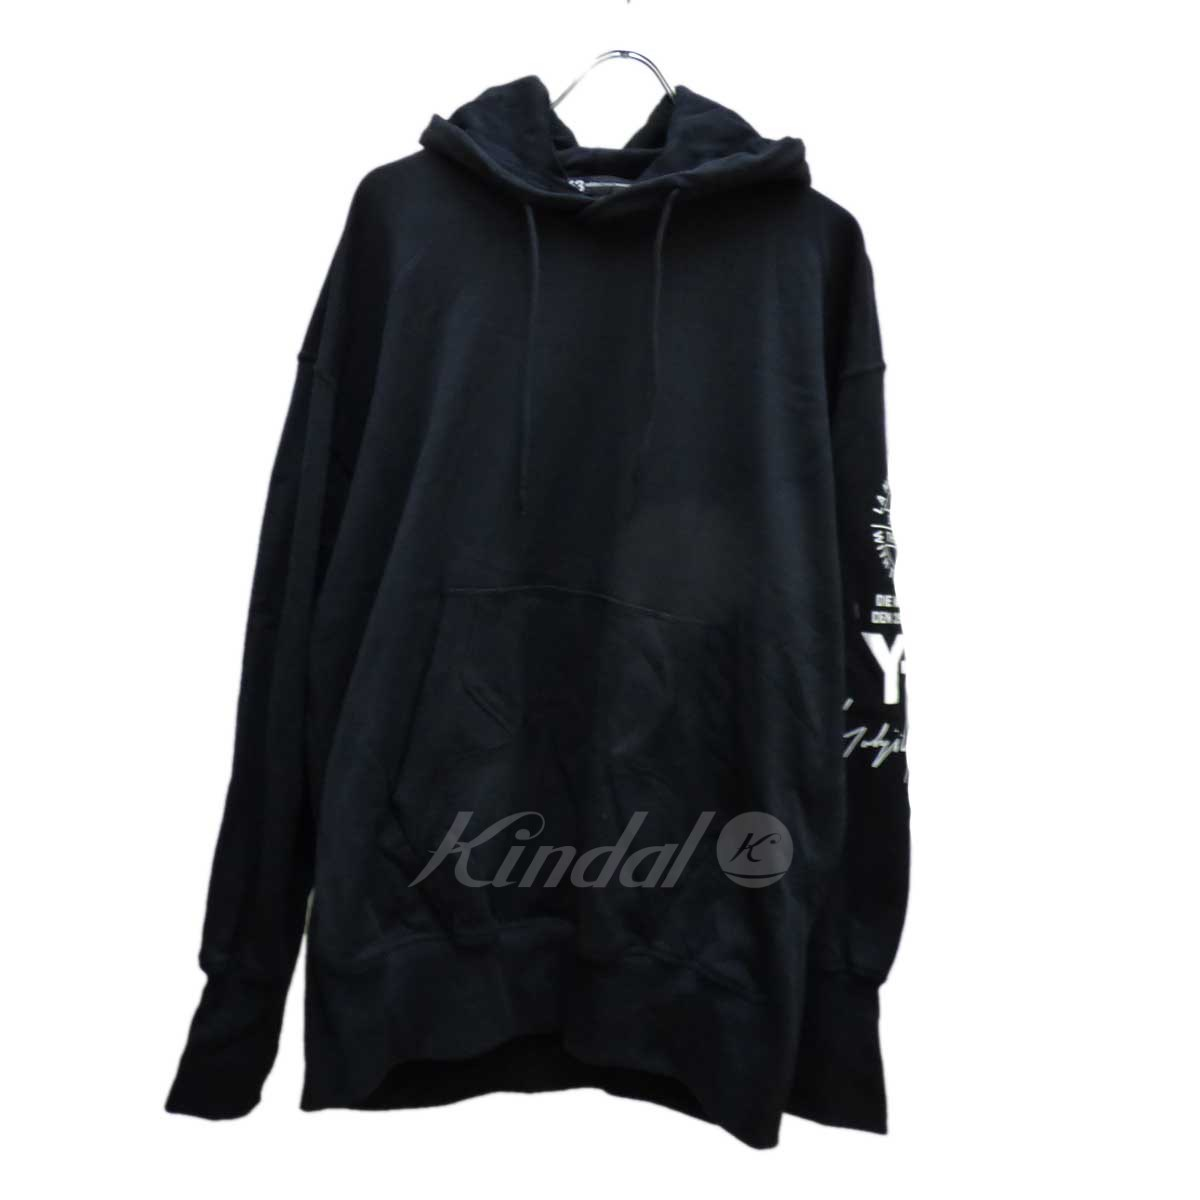 【中古】Y-3×adidas GRAPHIC HOODED PARKA パーカー 【送料無料】 【183753】 【KIND1551】